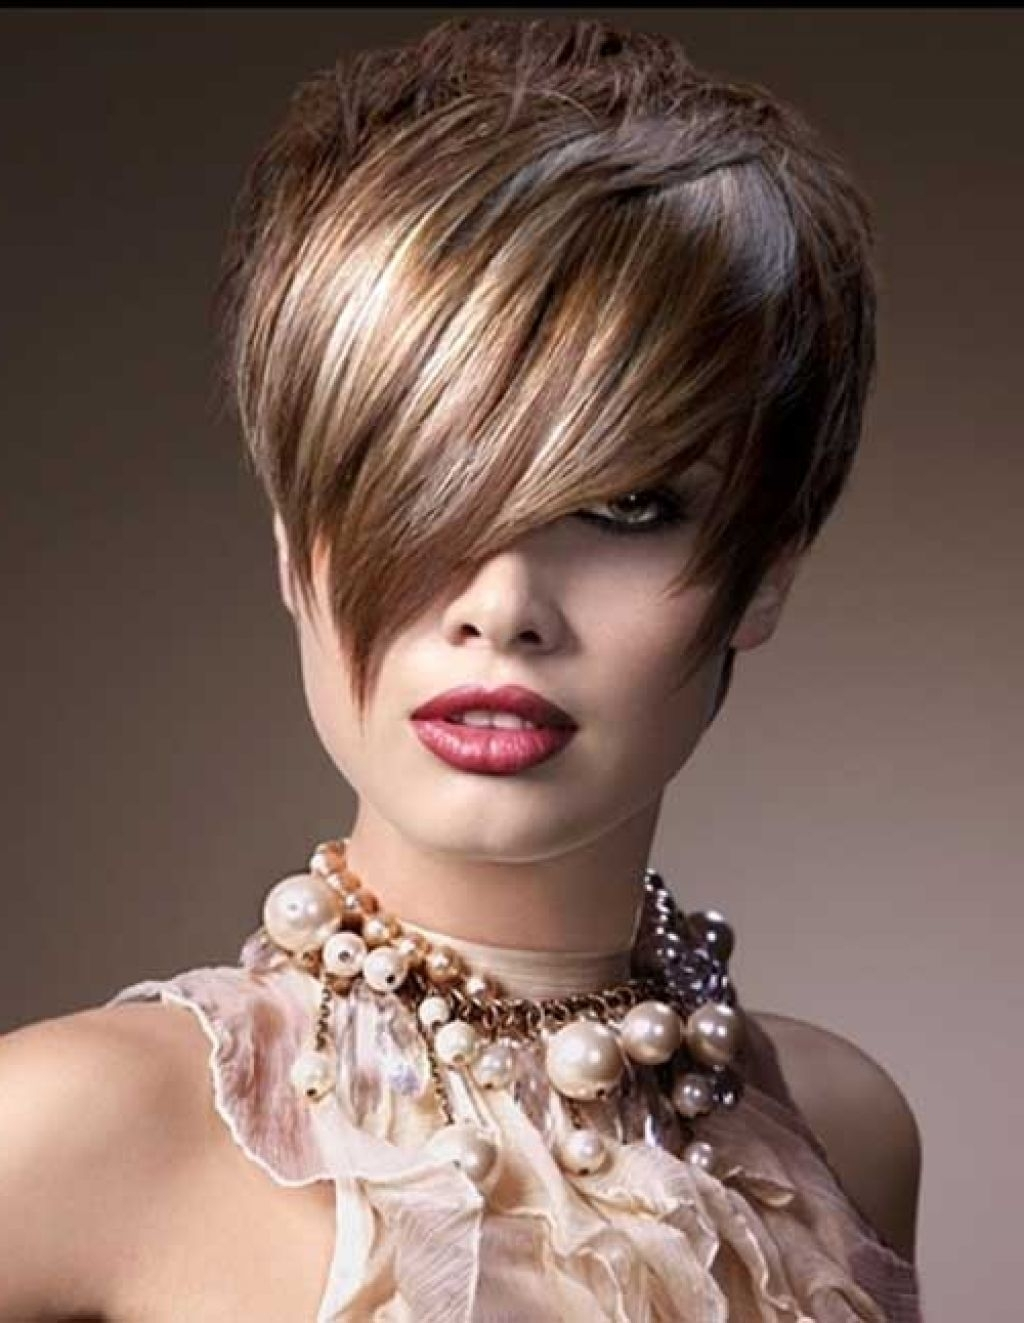 Short Pixie Haircuts With Long Bangs For Women 2016 Hair Color With Current Pixie Hairstyles With Long Bangs (View 7 of 15)